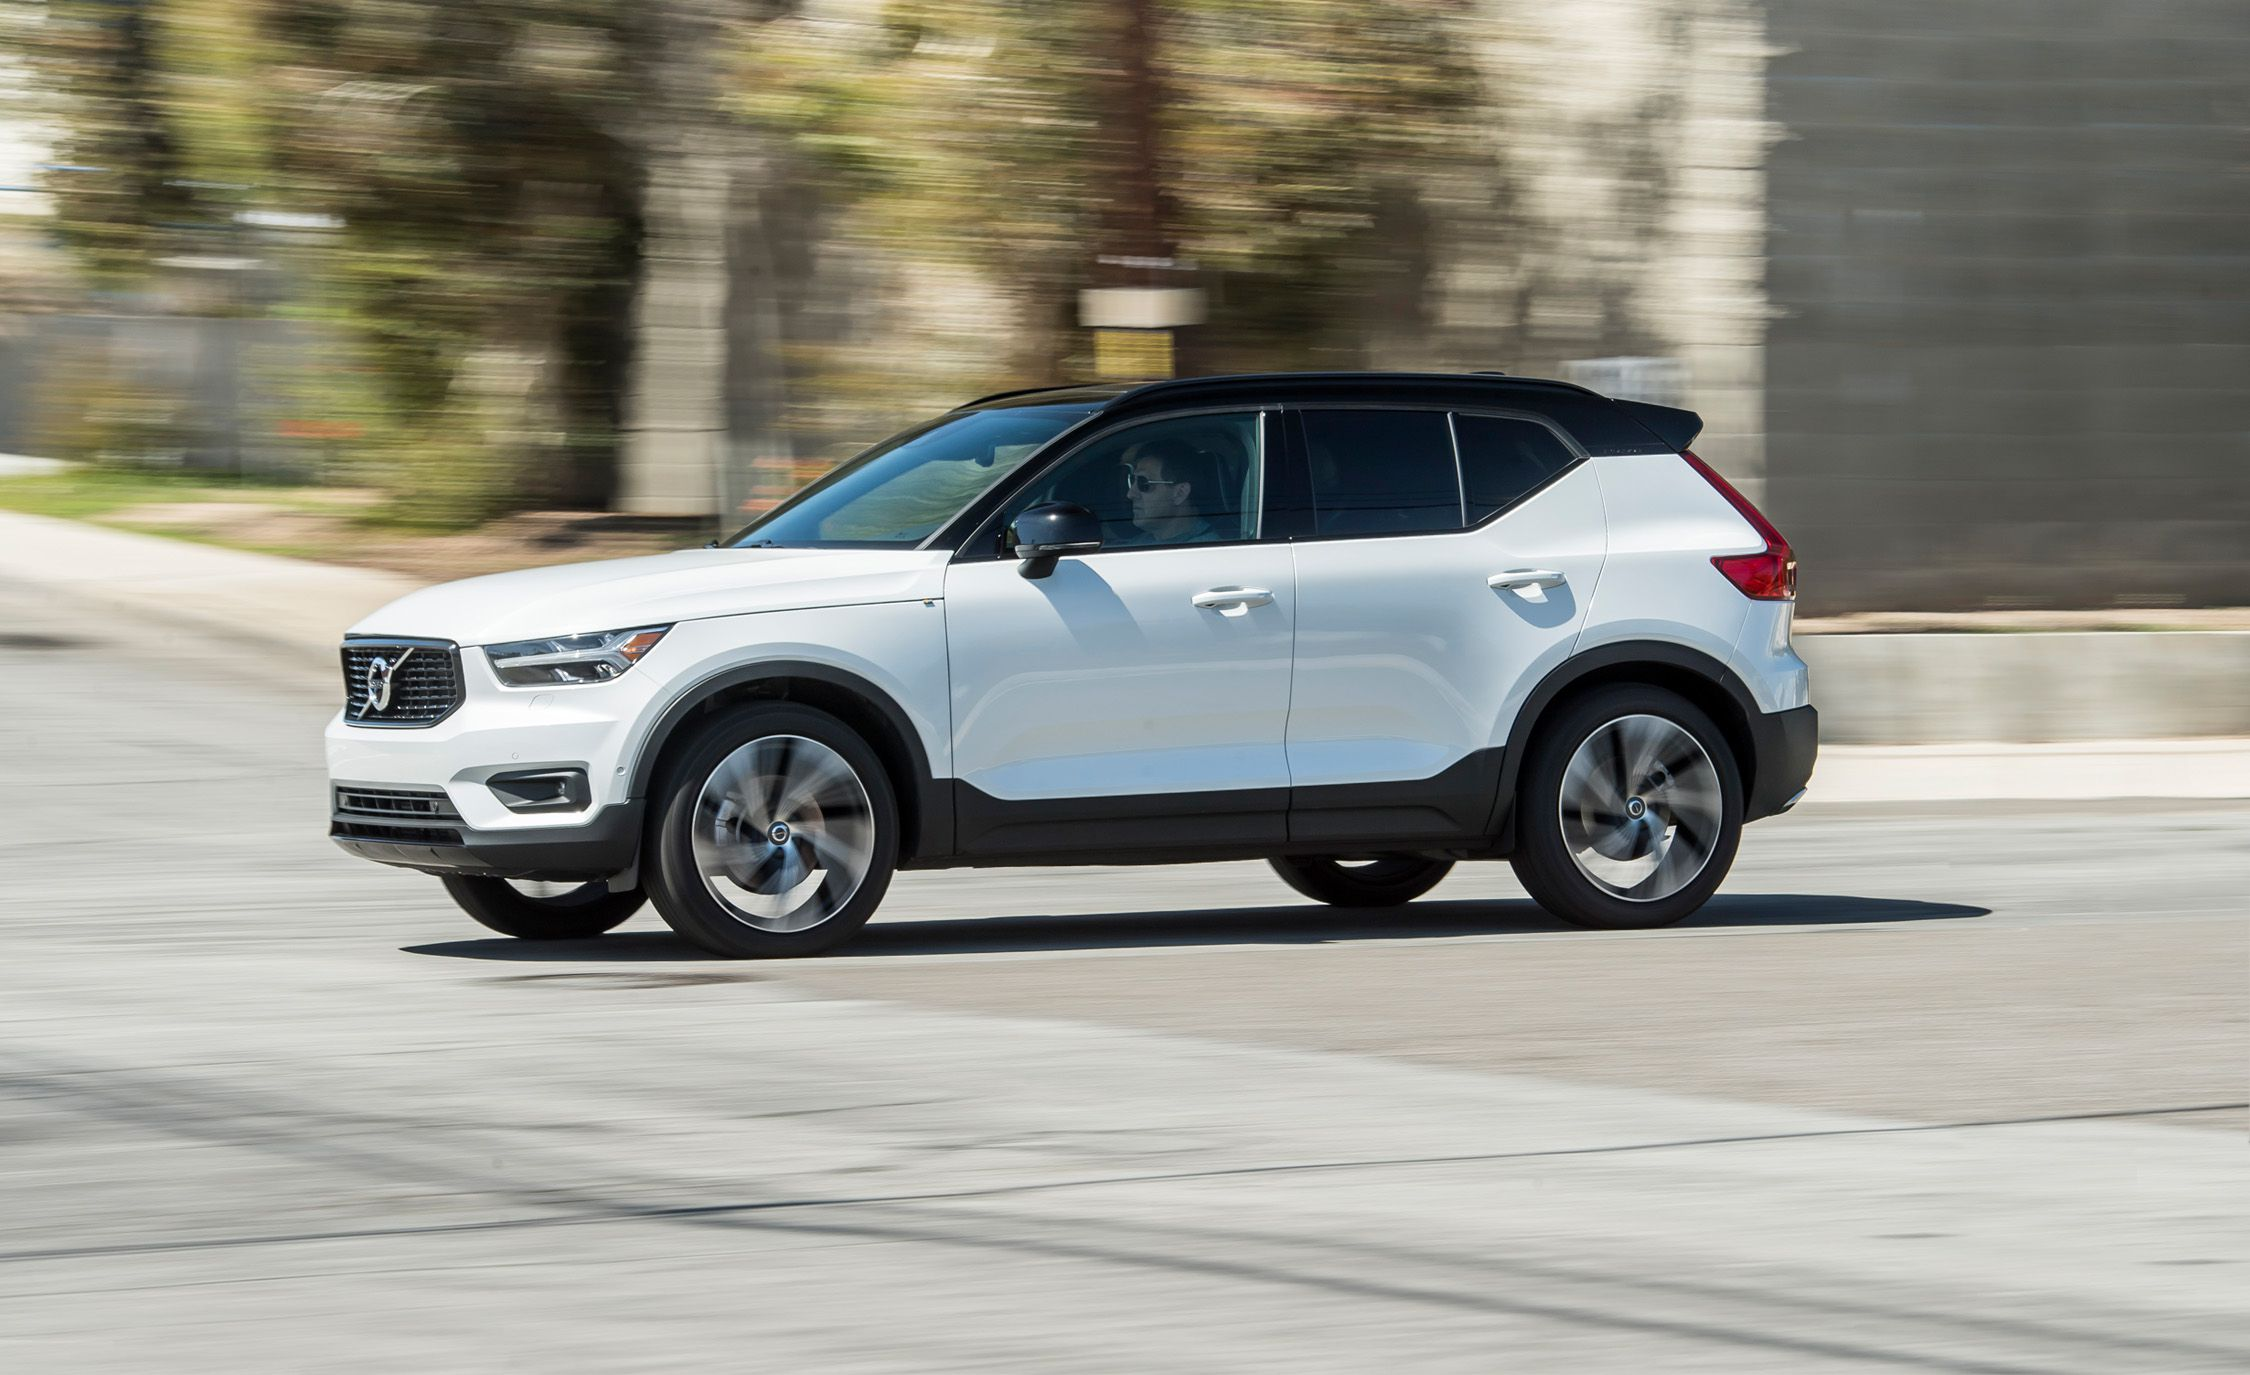 10 Things You Didn't Know About the 2019 Volvo XC40